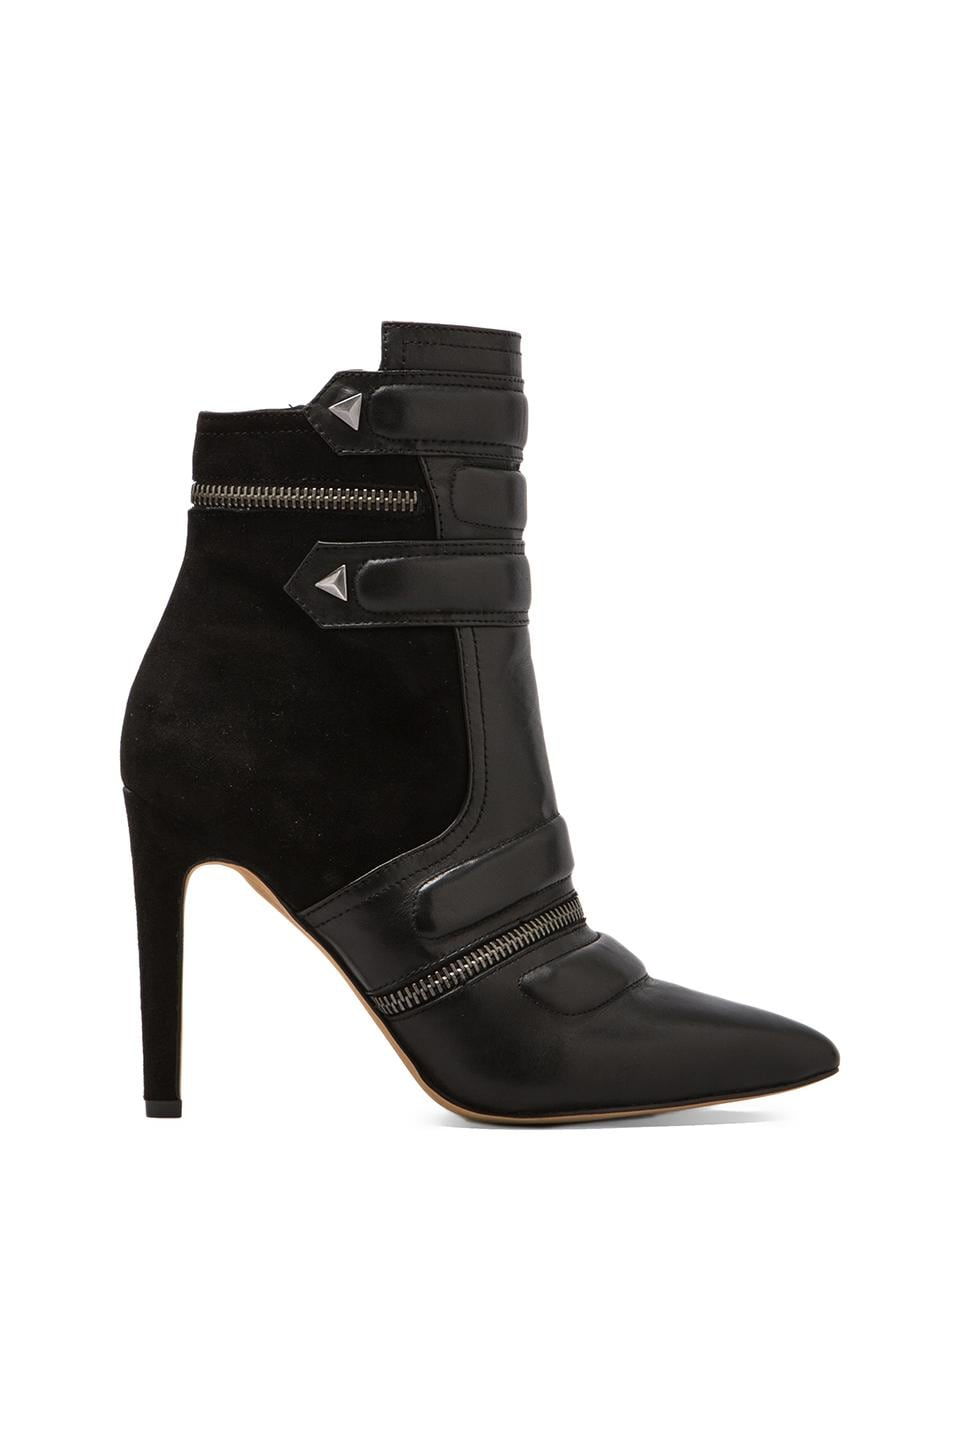 Sam Edelman Margo Bootie in Black